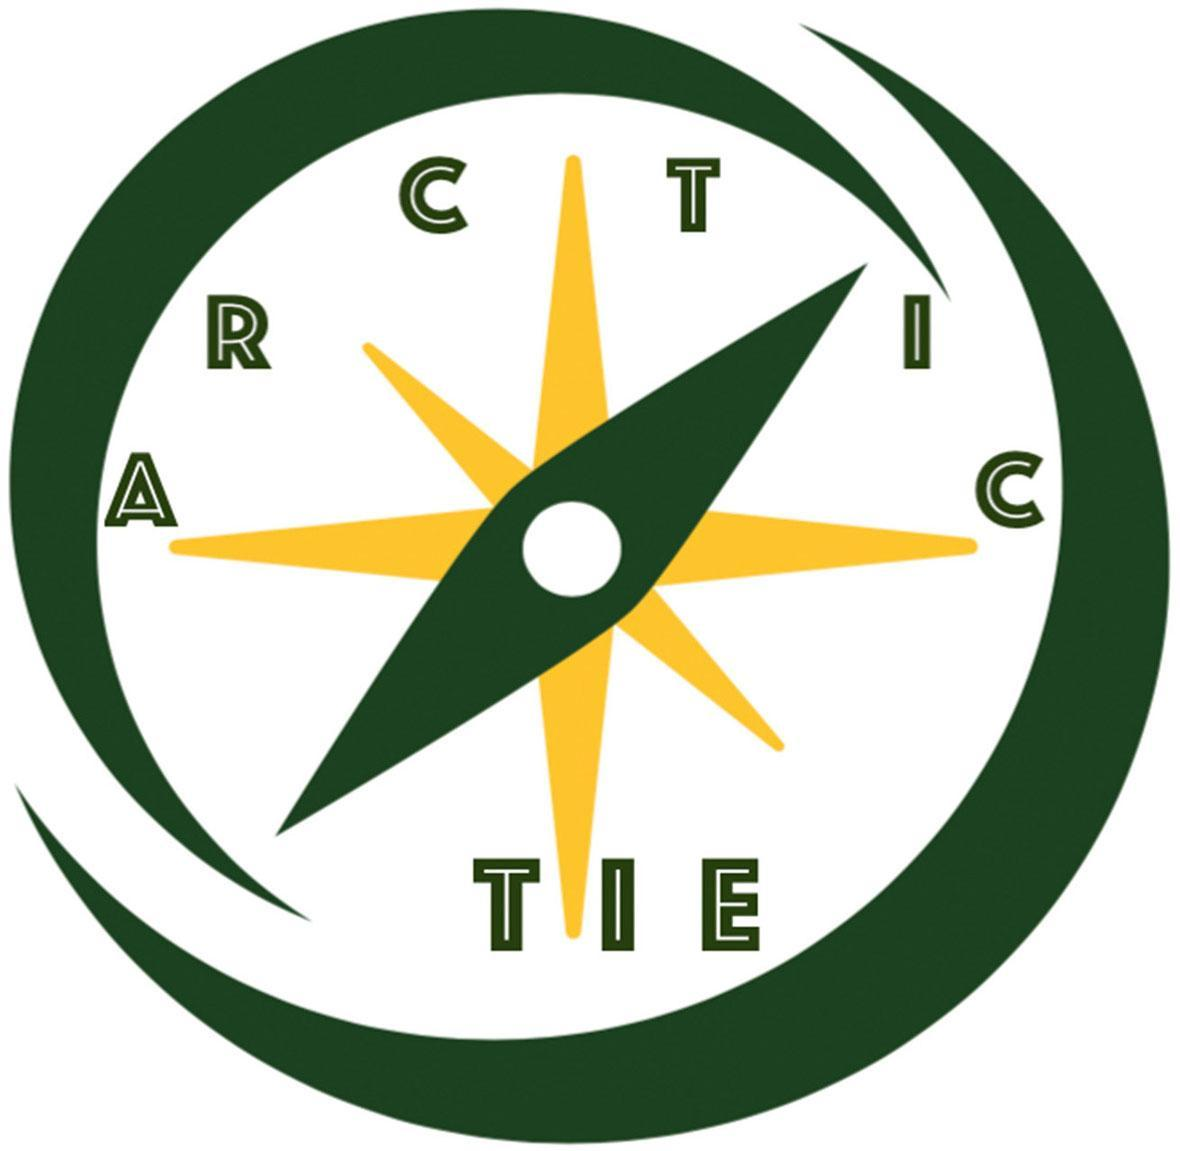 ARCTIC TIE: The Core Values of HudsonWay Immersion School